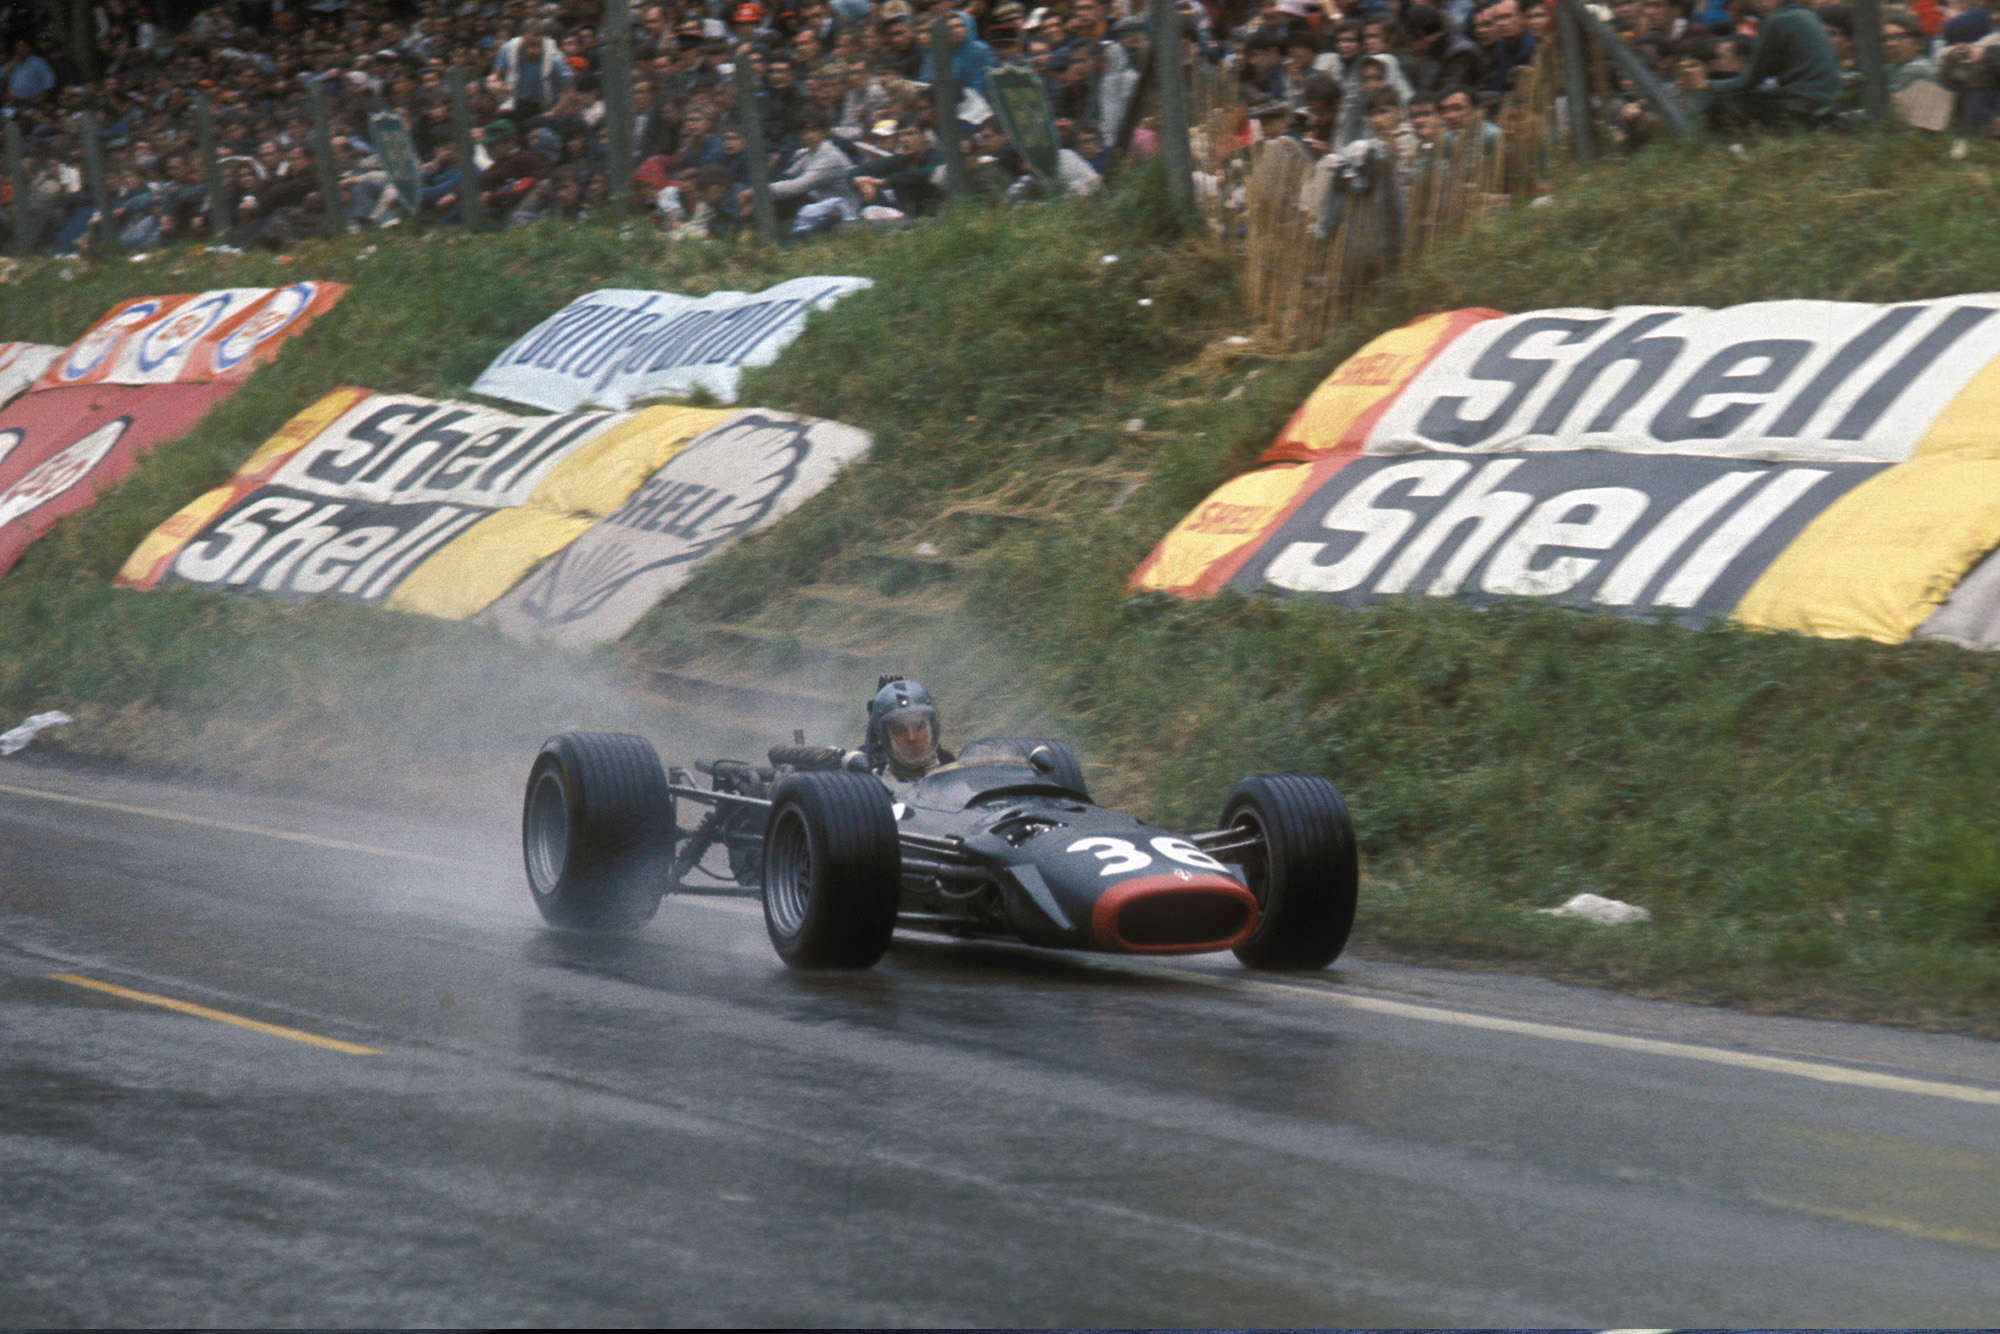 Piers Courage in a BRM at the 1968 French GP